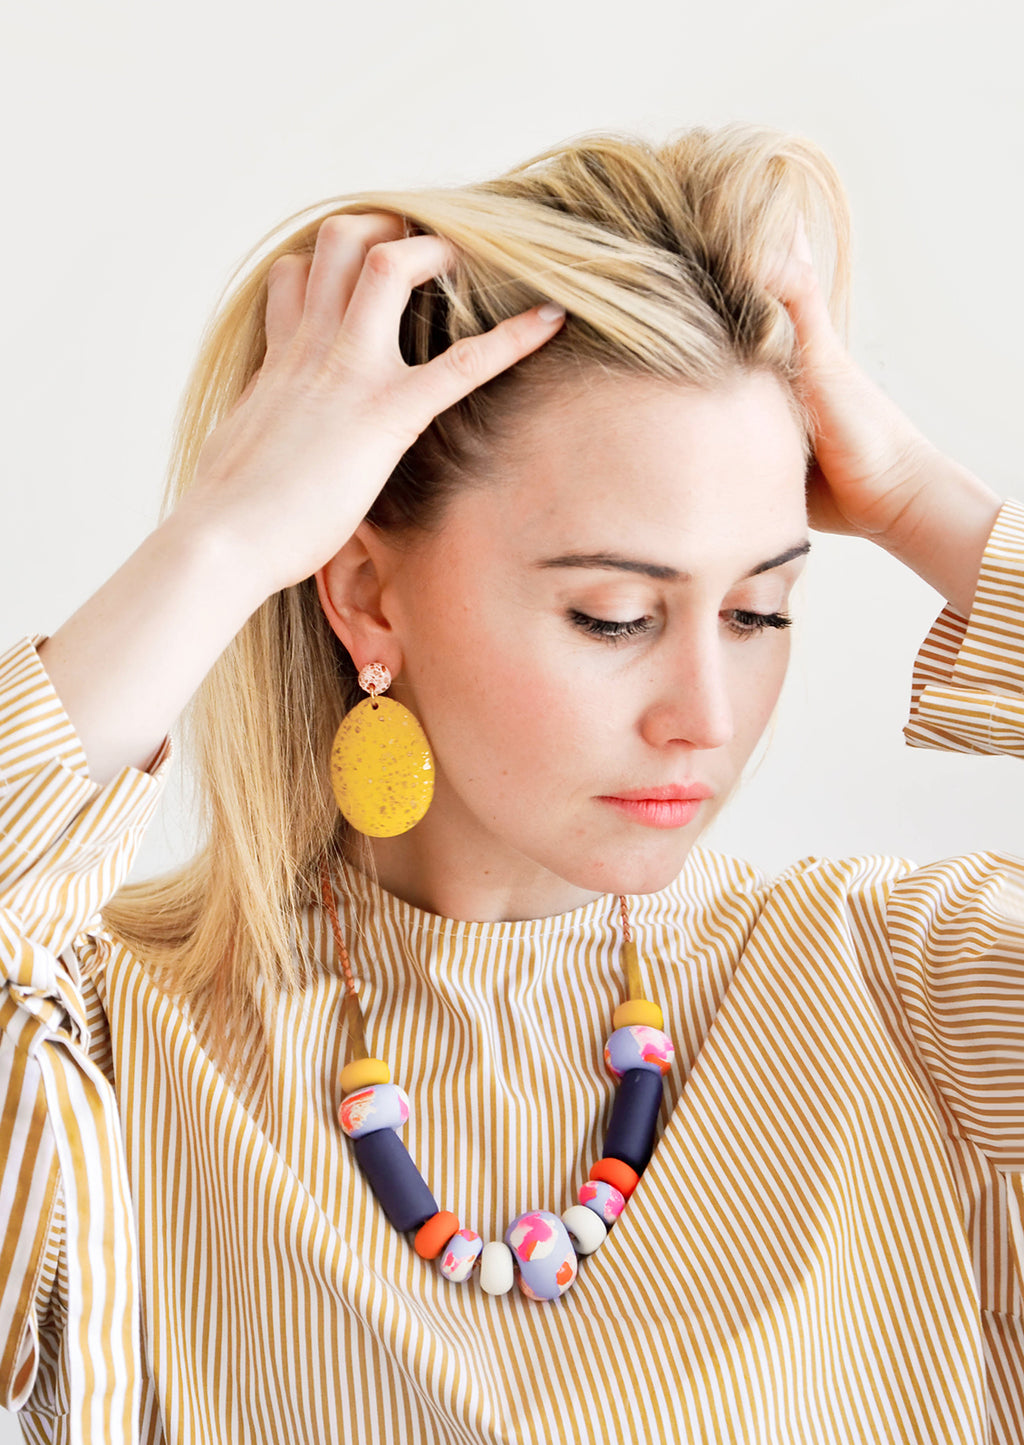 4: Model wears large yellow earrings and clay bead necklace.